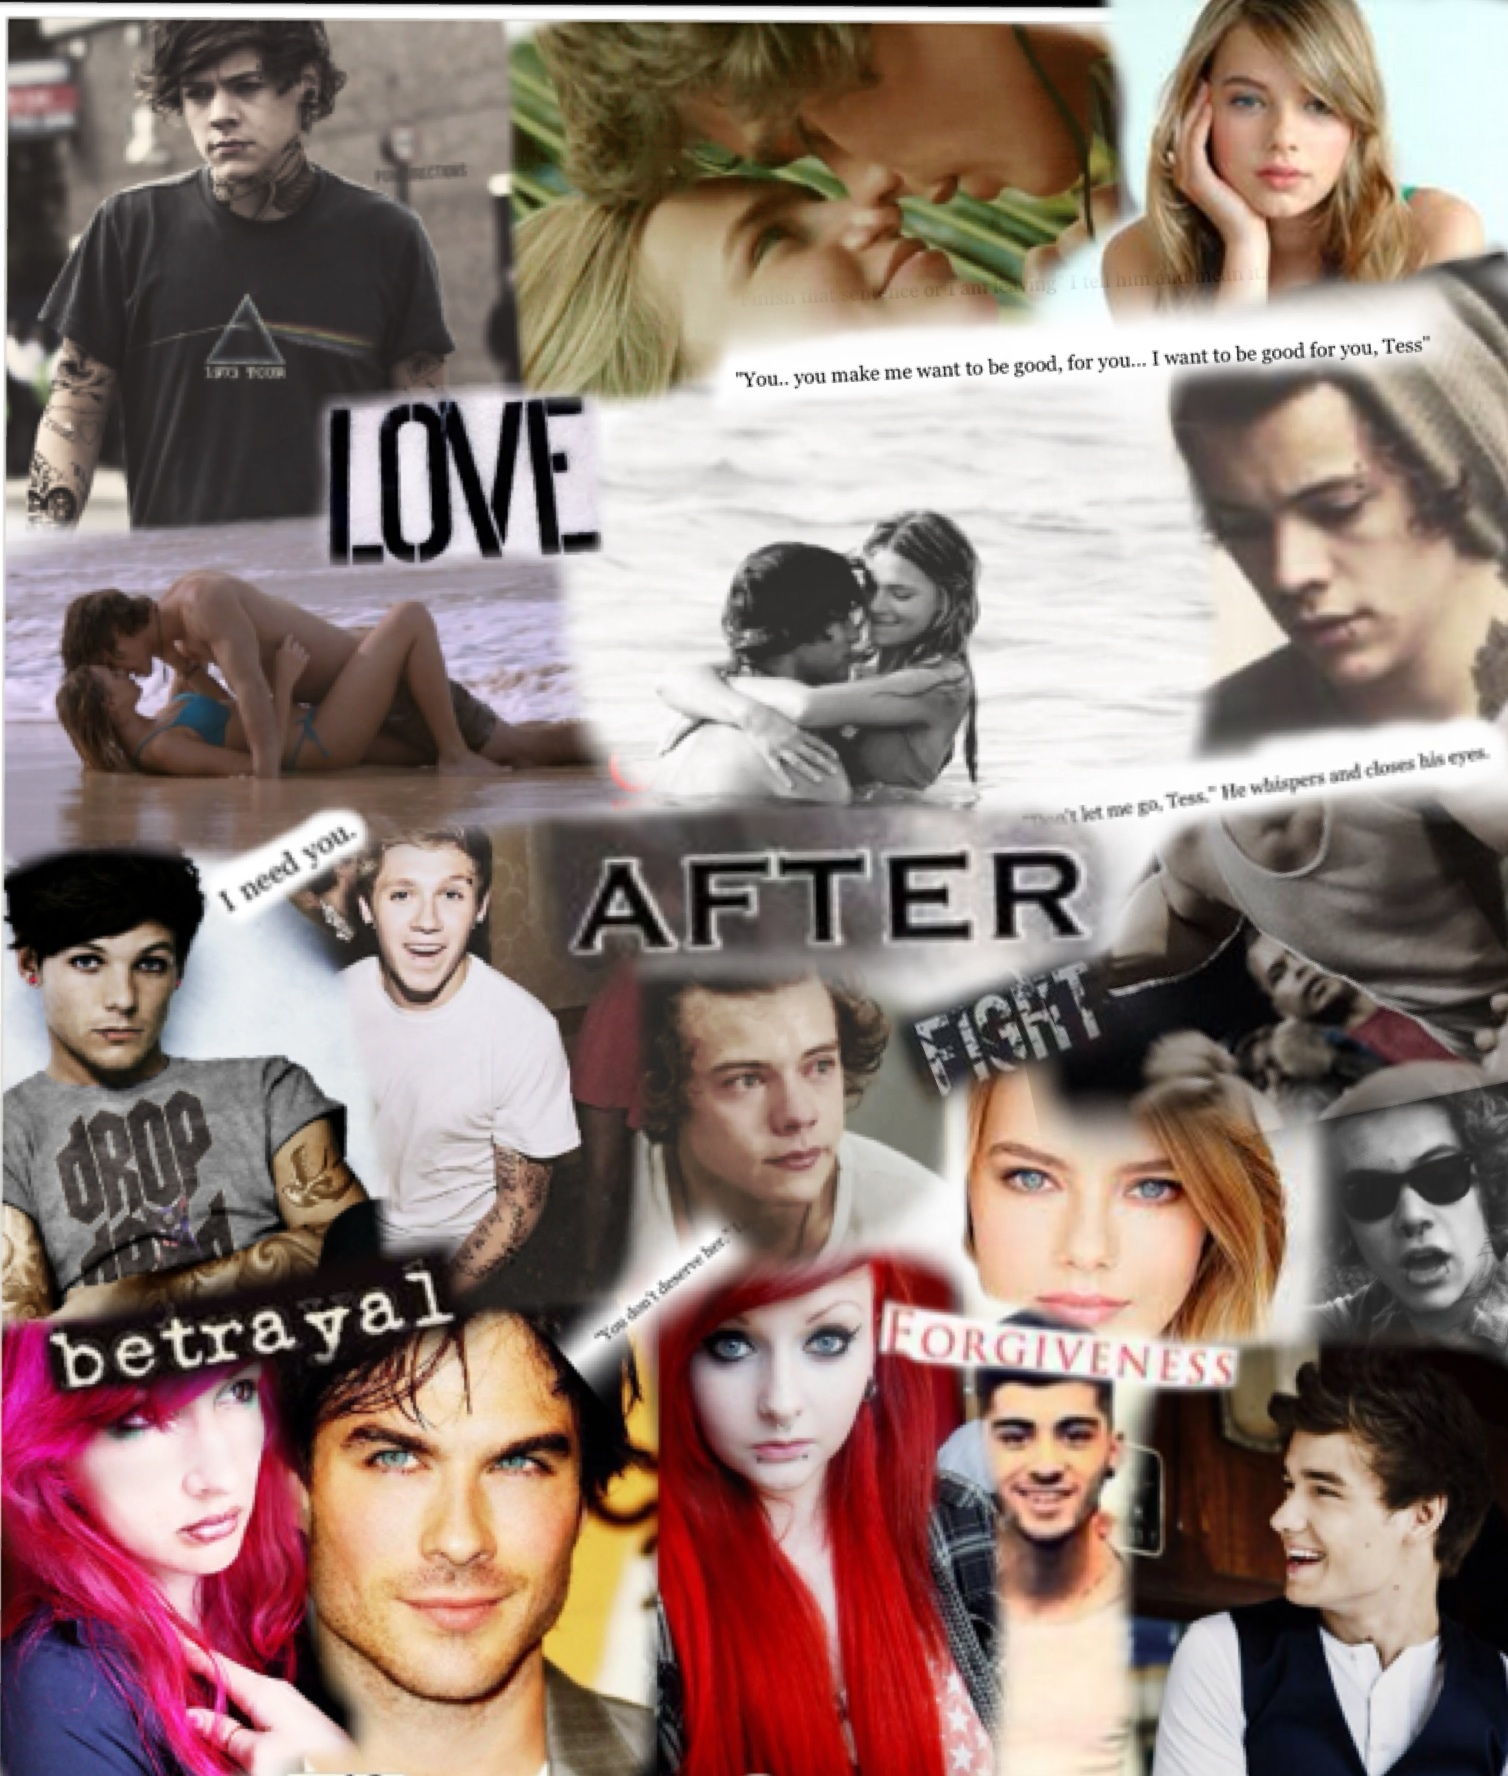 After fanfic collage